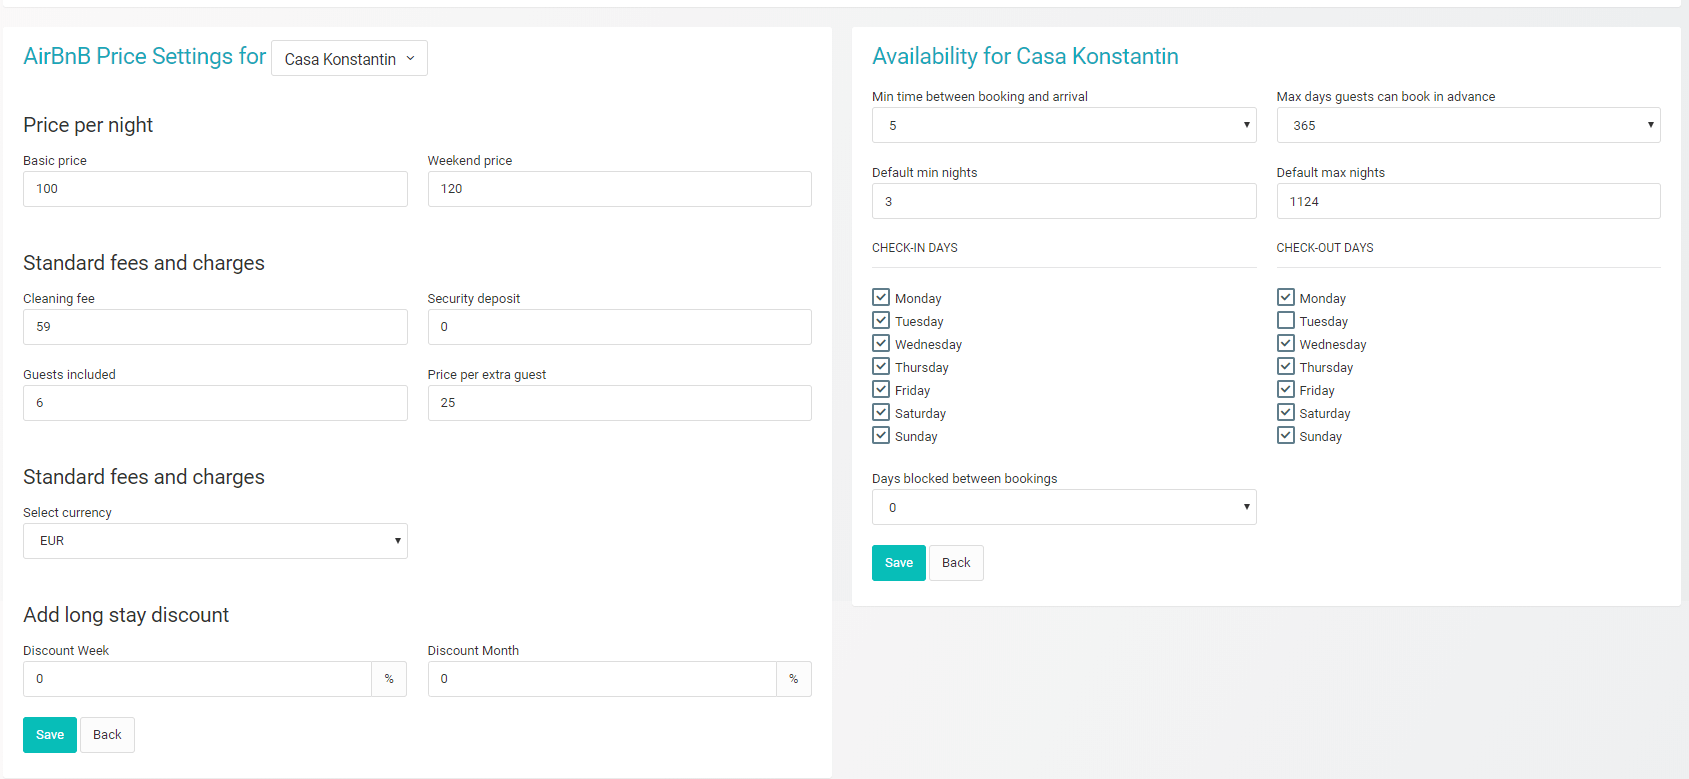 ᐅ USER GUIDE: how to manage Airbnb if you use the official connection with Smoobu